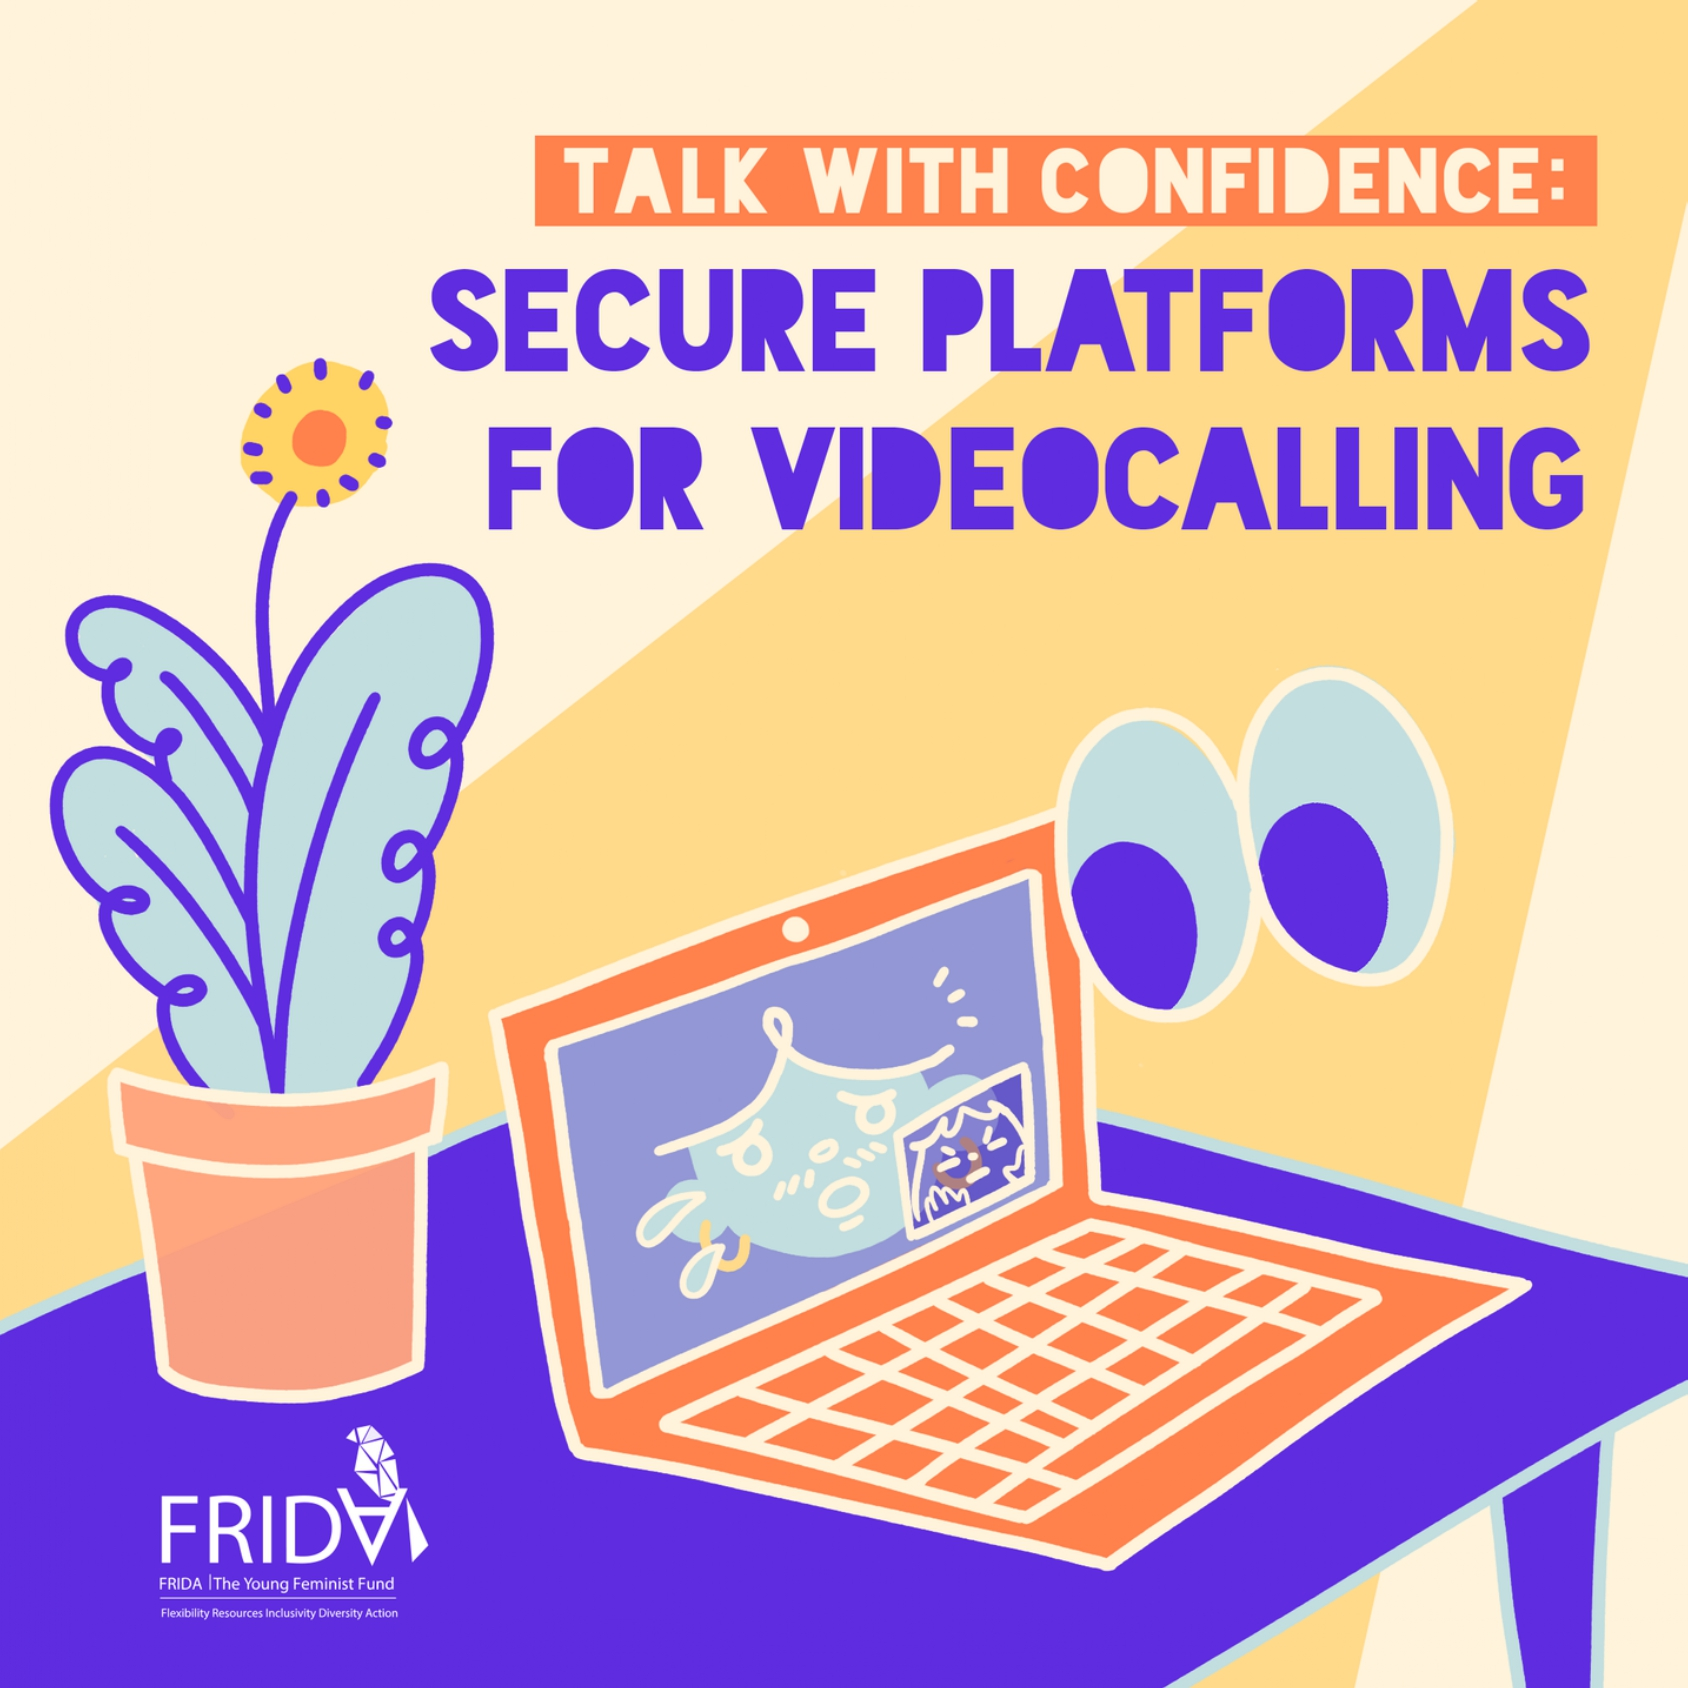 Talk With Confidence: Secure Platforms for Videocalling